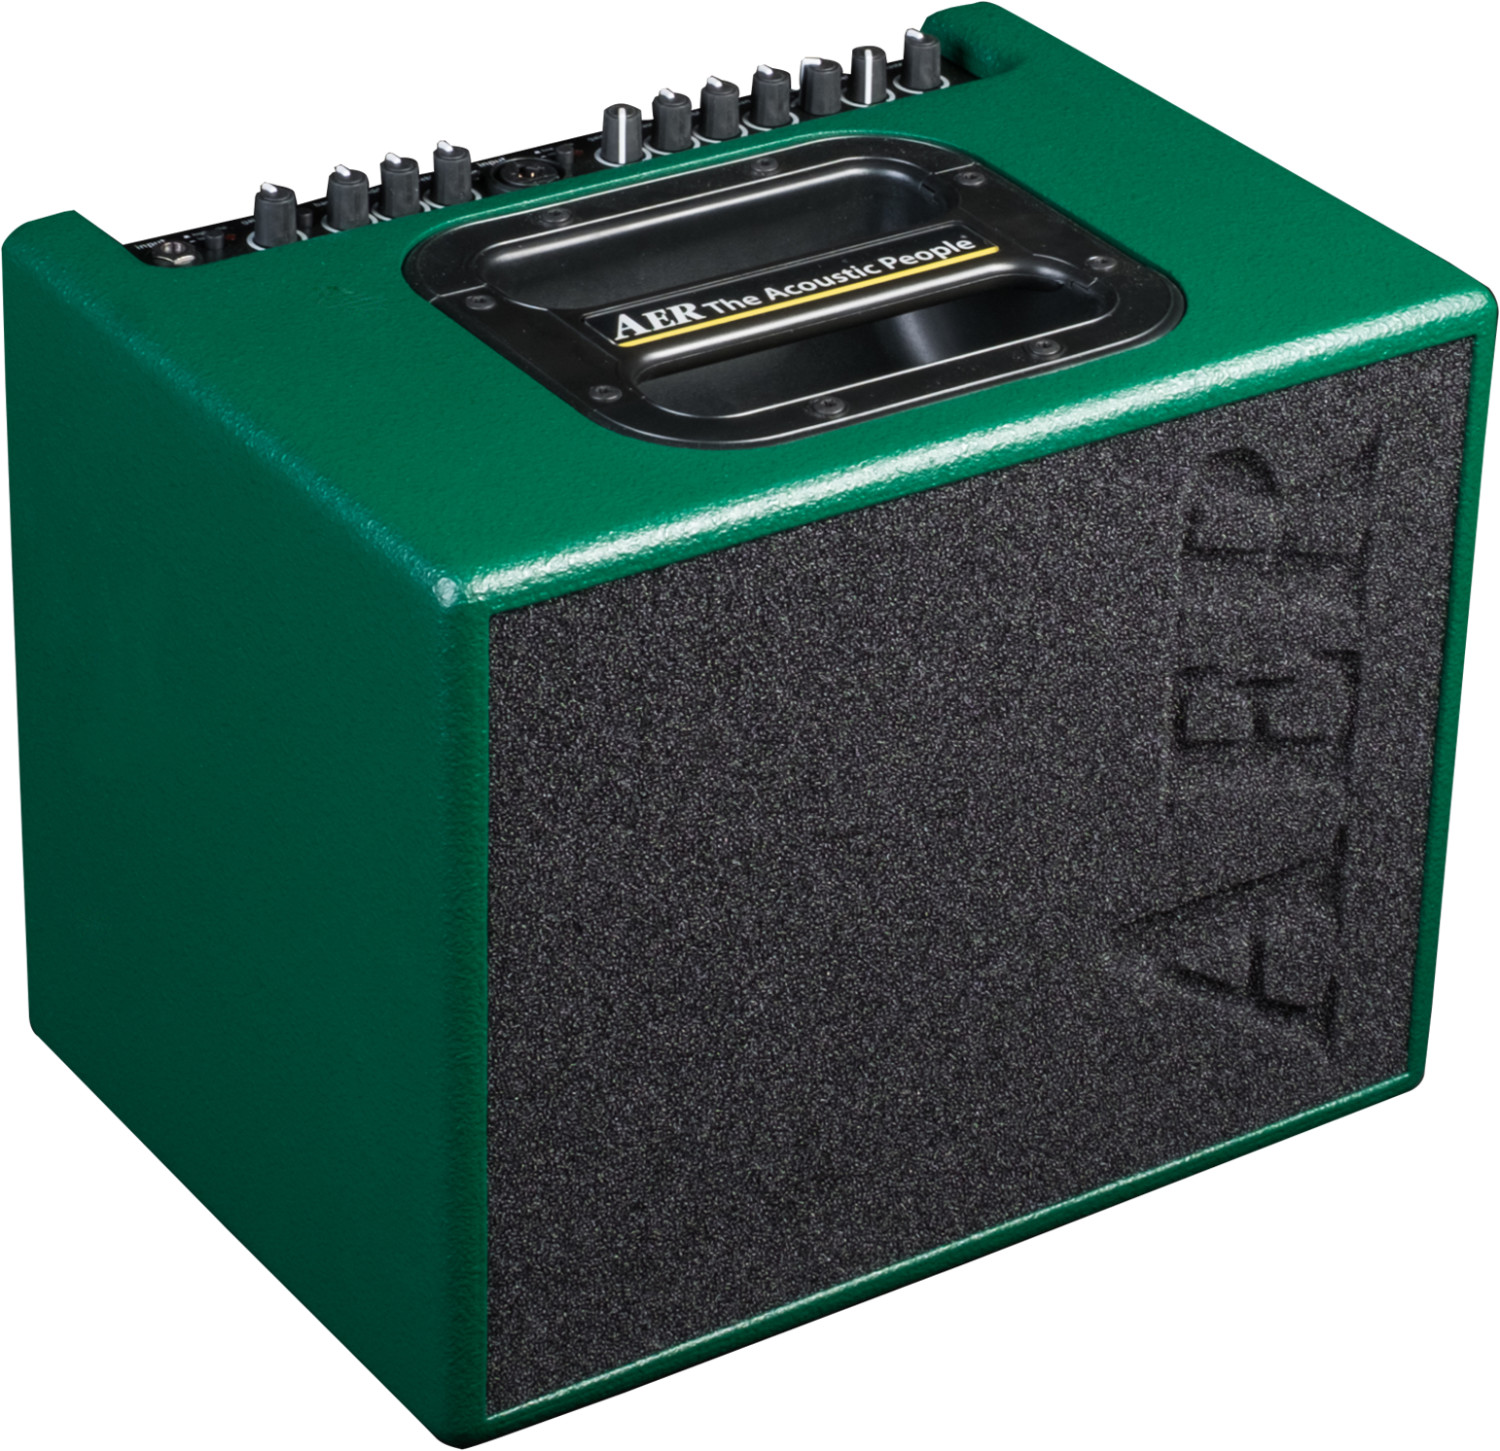 Image of AER Compact 60-4